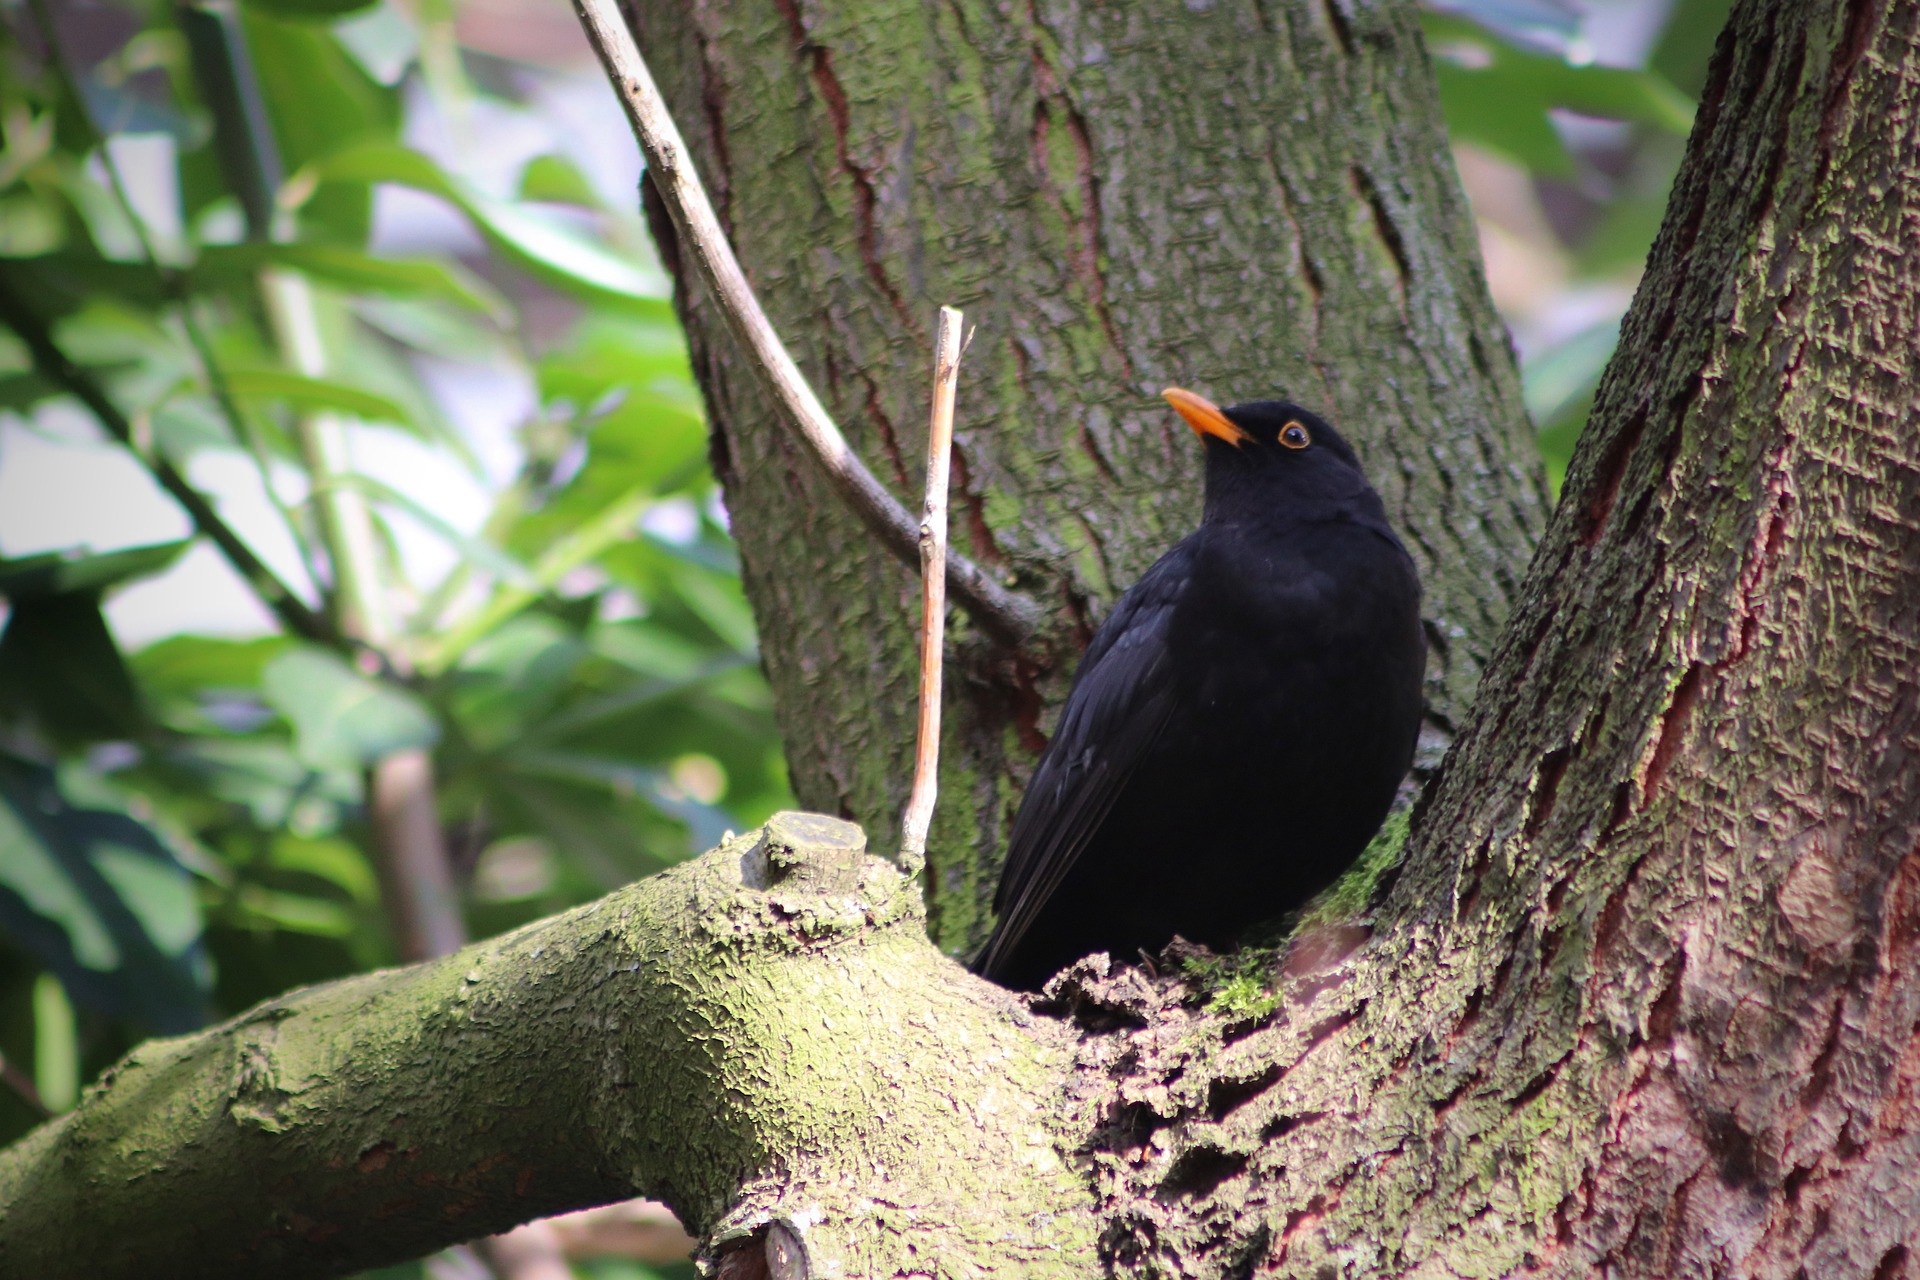 Black bird on a tree